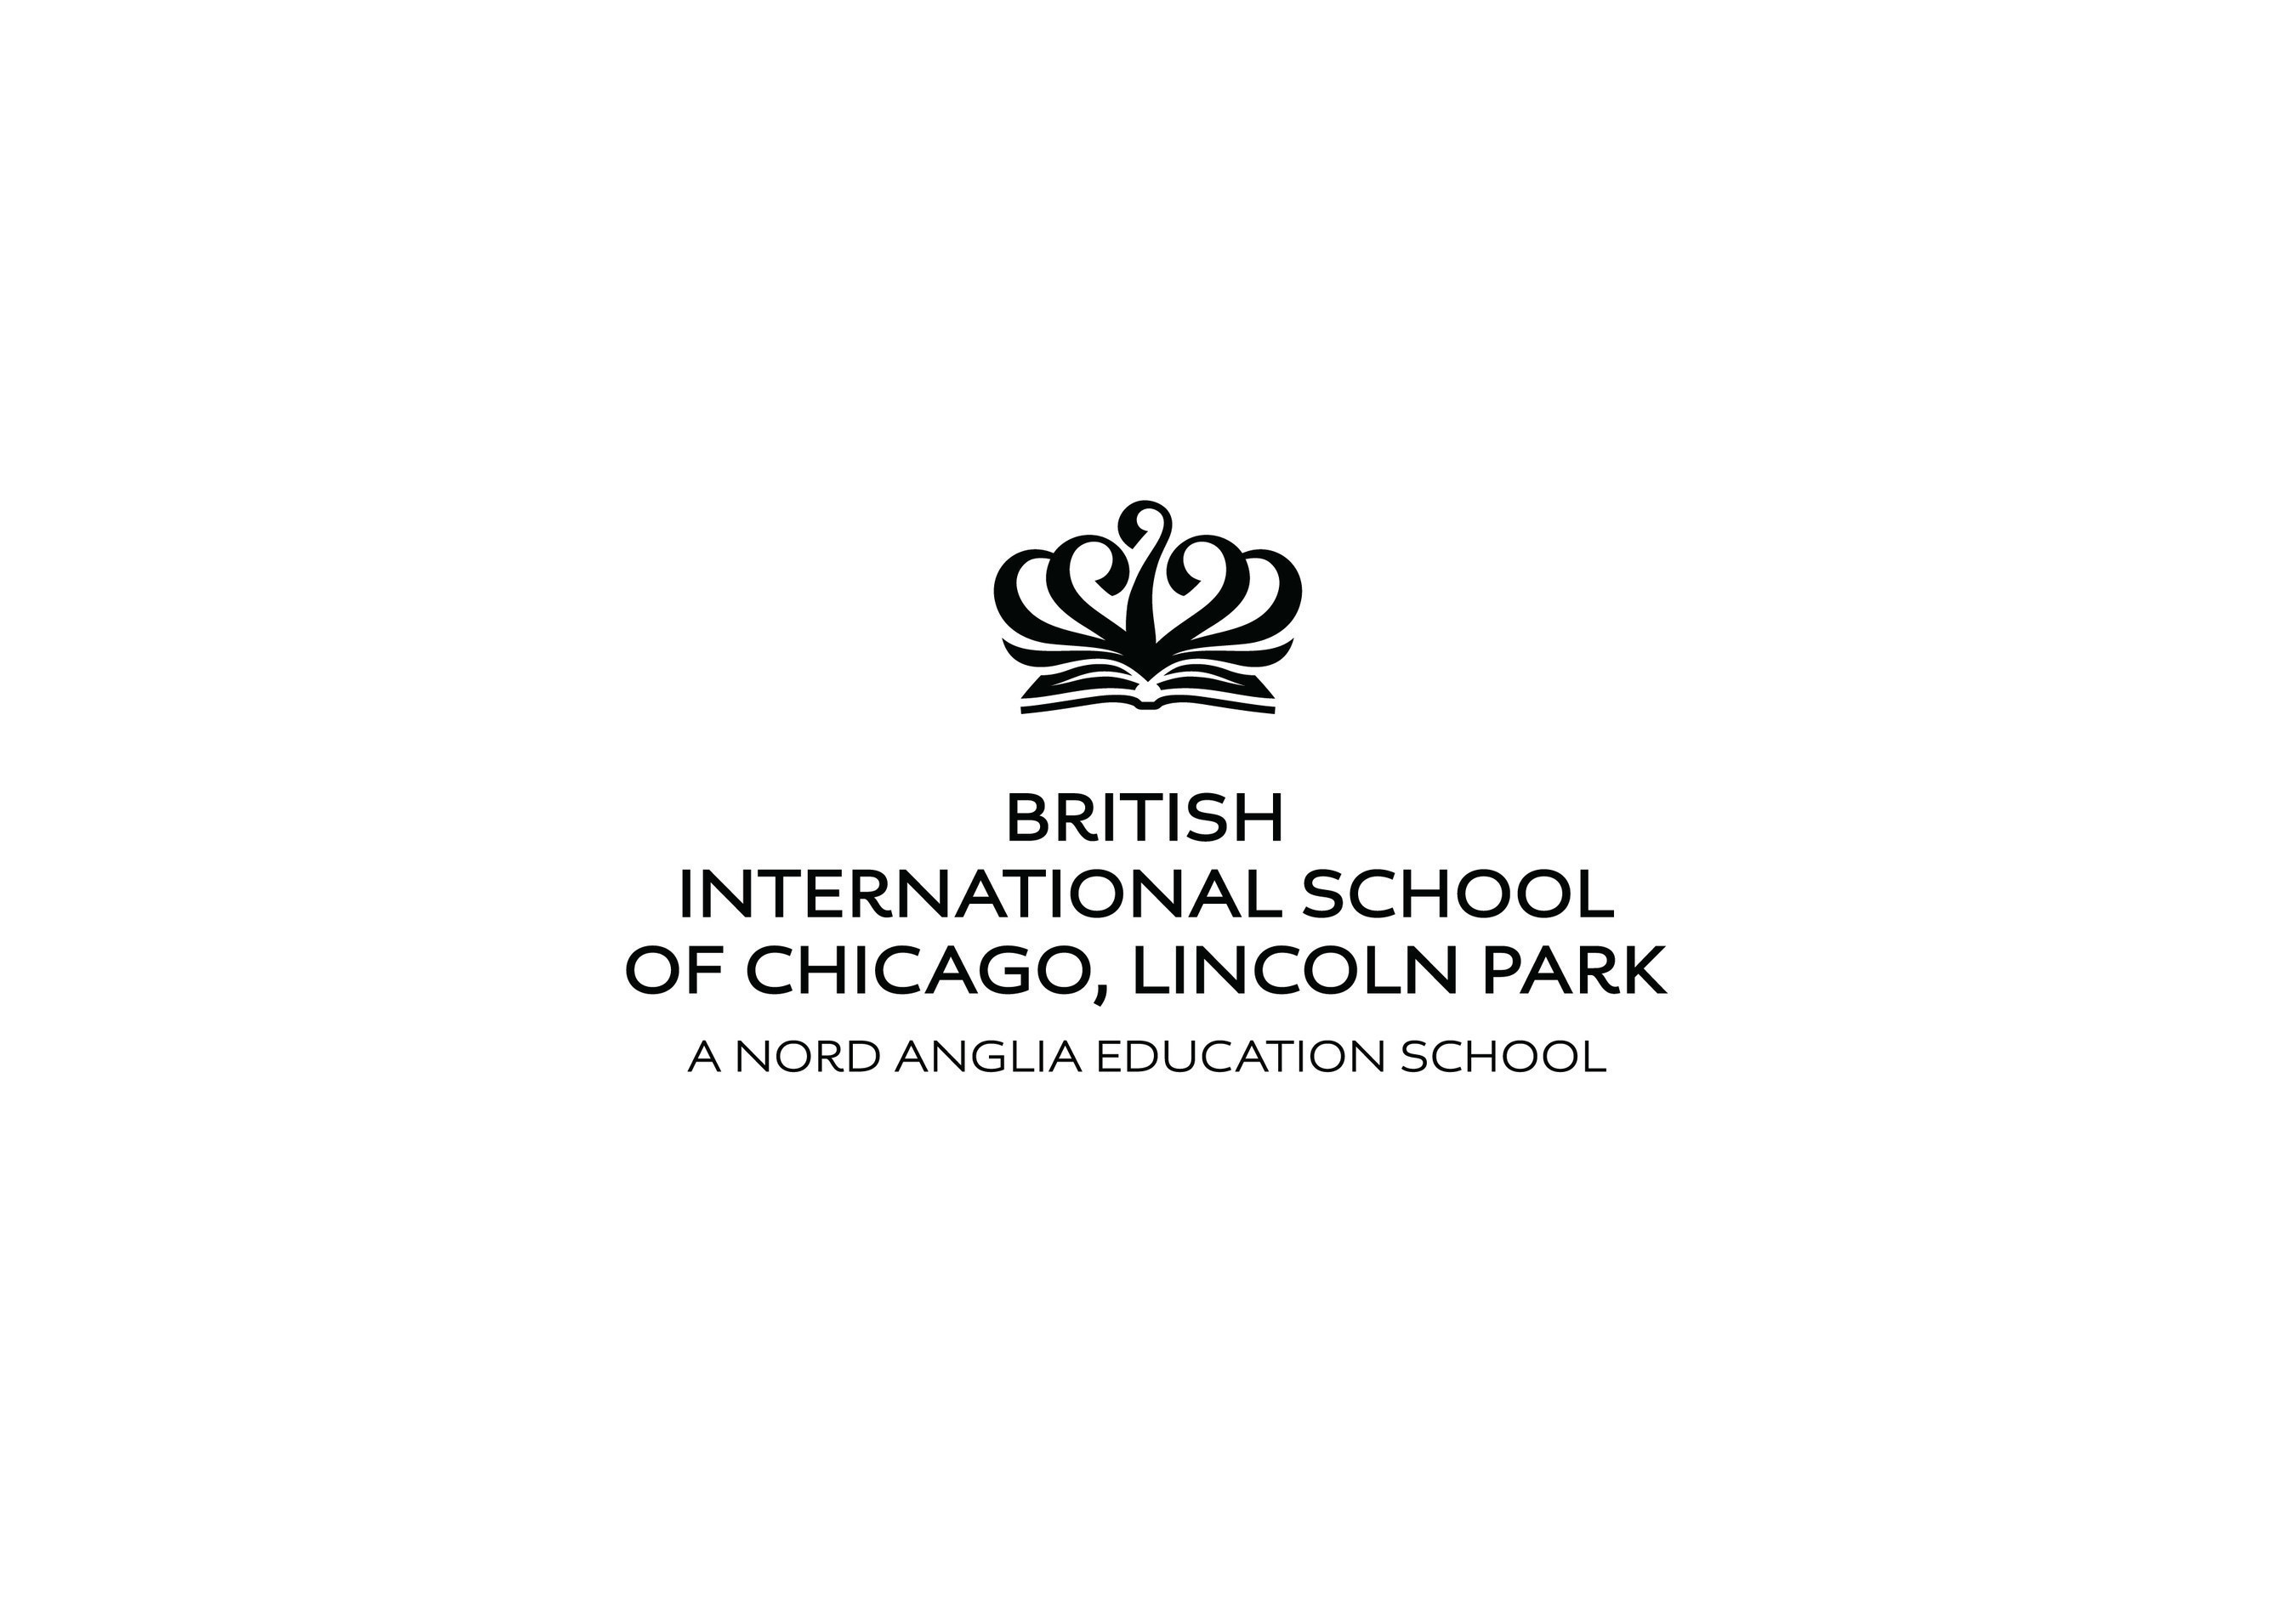 A private, international school in Chicago educating students ages 3 to 11 years old through personalized learning and an innovative, hands on curriculum. Inspiring the critical thinkers and entrepreneurs of tomorrow. (PRNewsFoto/British International School...)